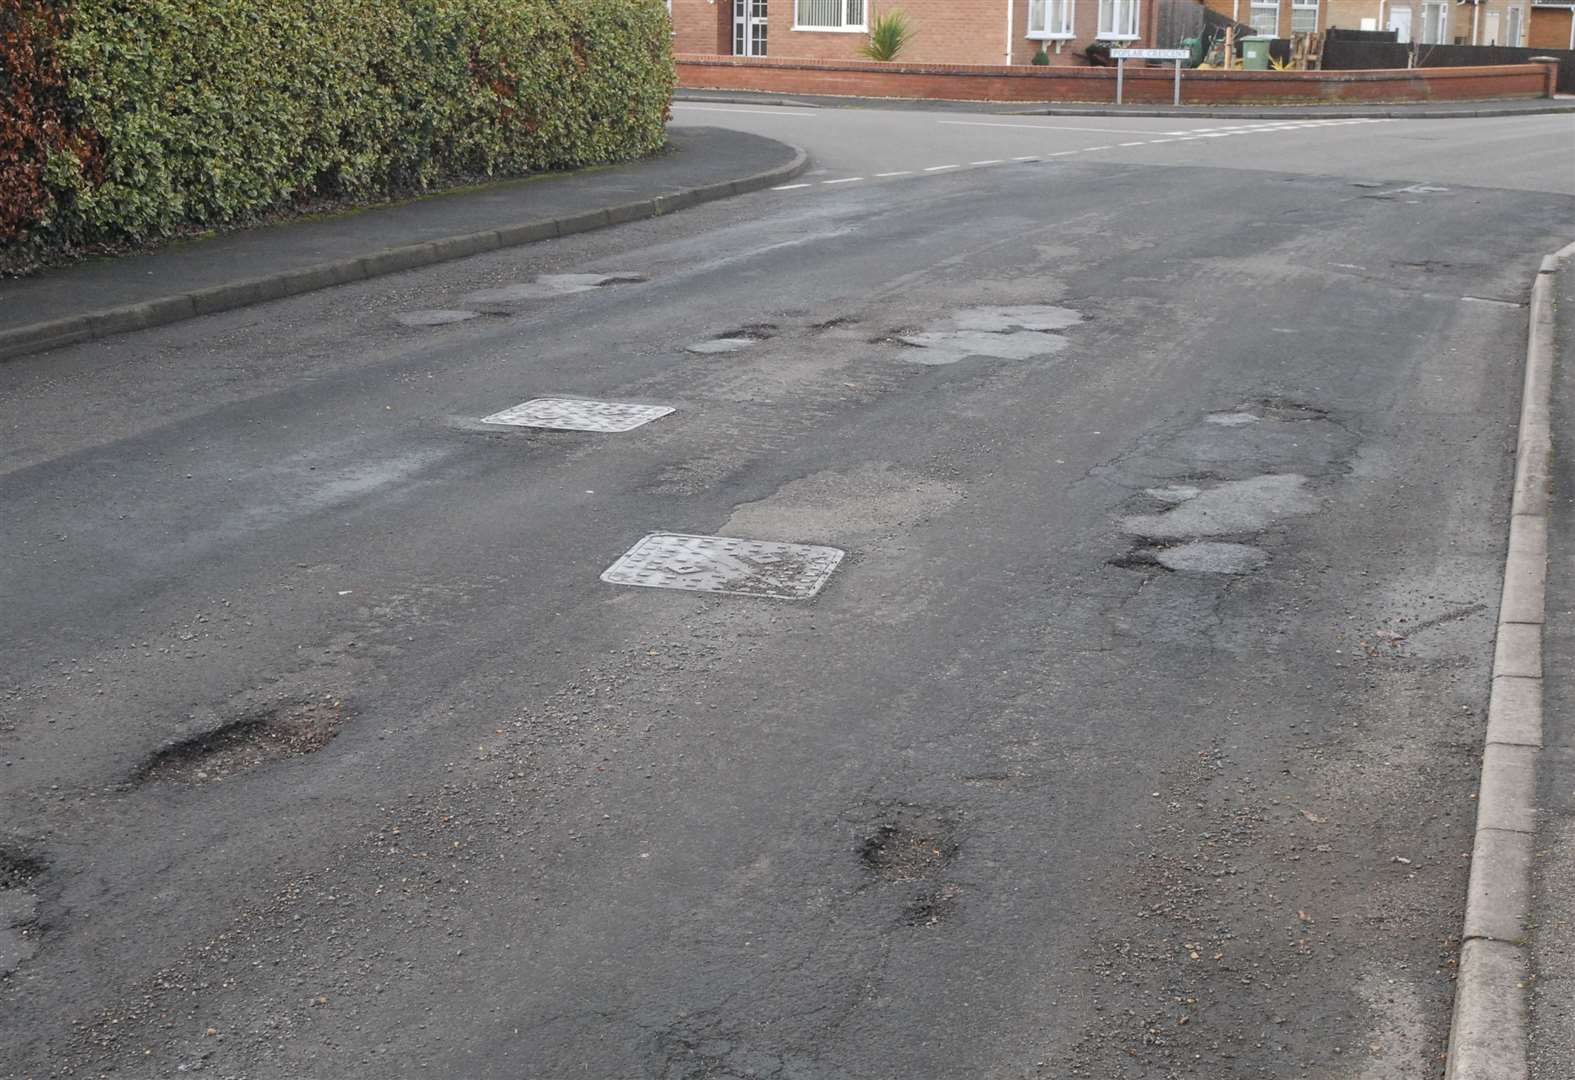 Suffolk Labour describes pothole blight as 'poor advert for county' as repairs budget revealed